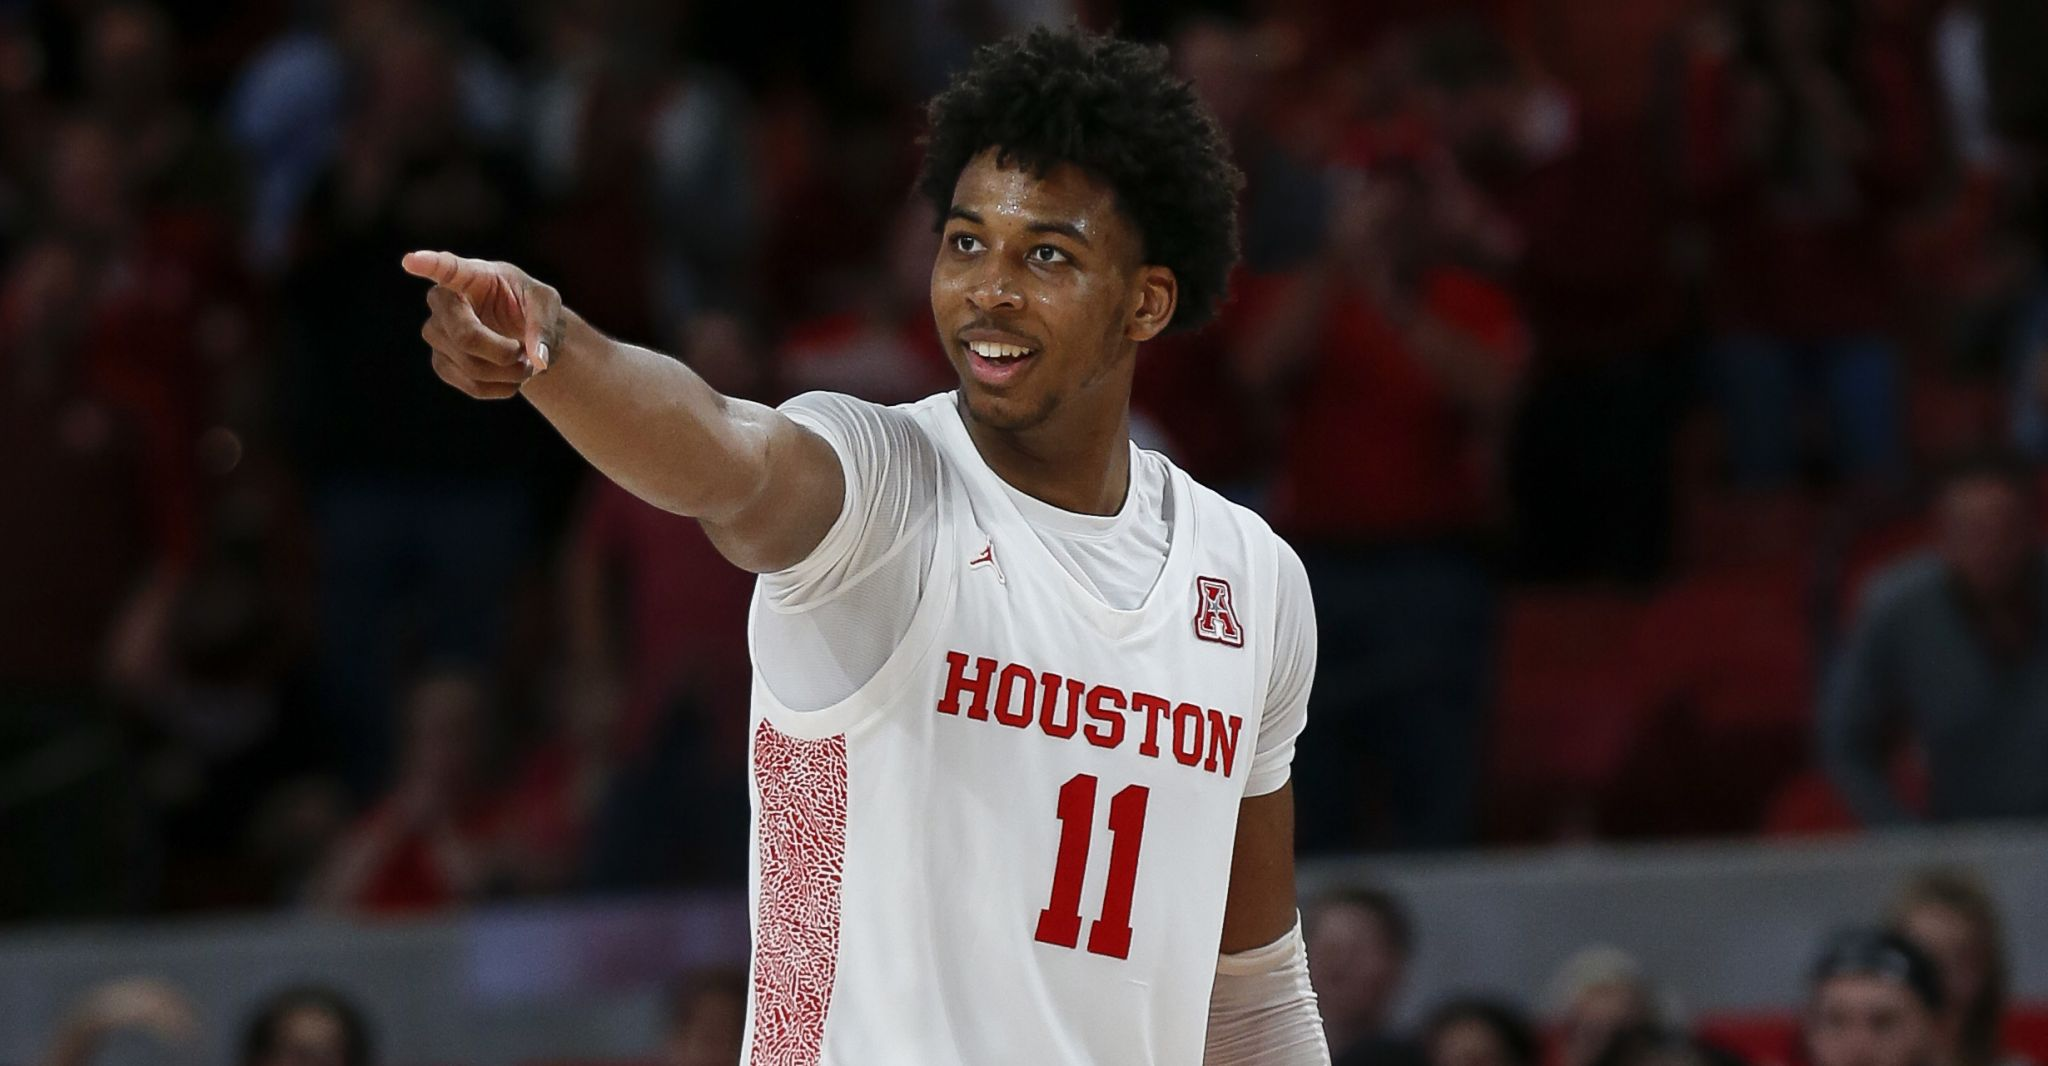 Former UH star Nate Hinton plans to sign with Mavericks -  HoustonChronicle.com